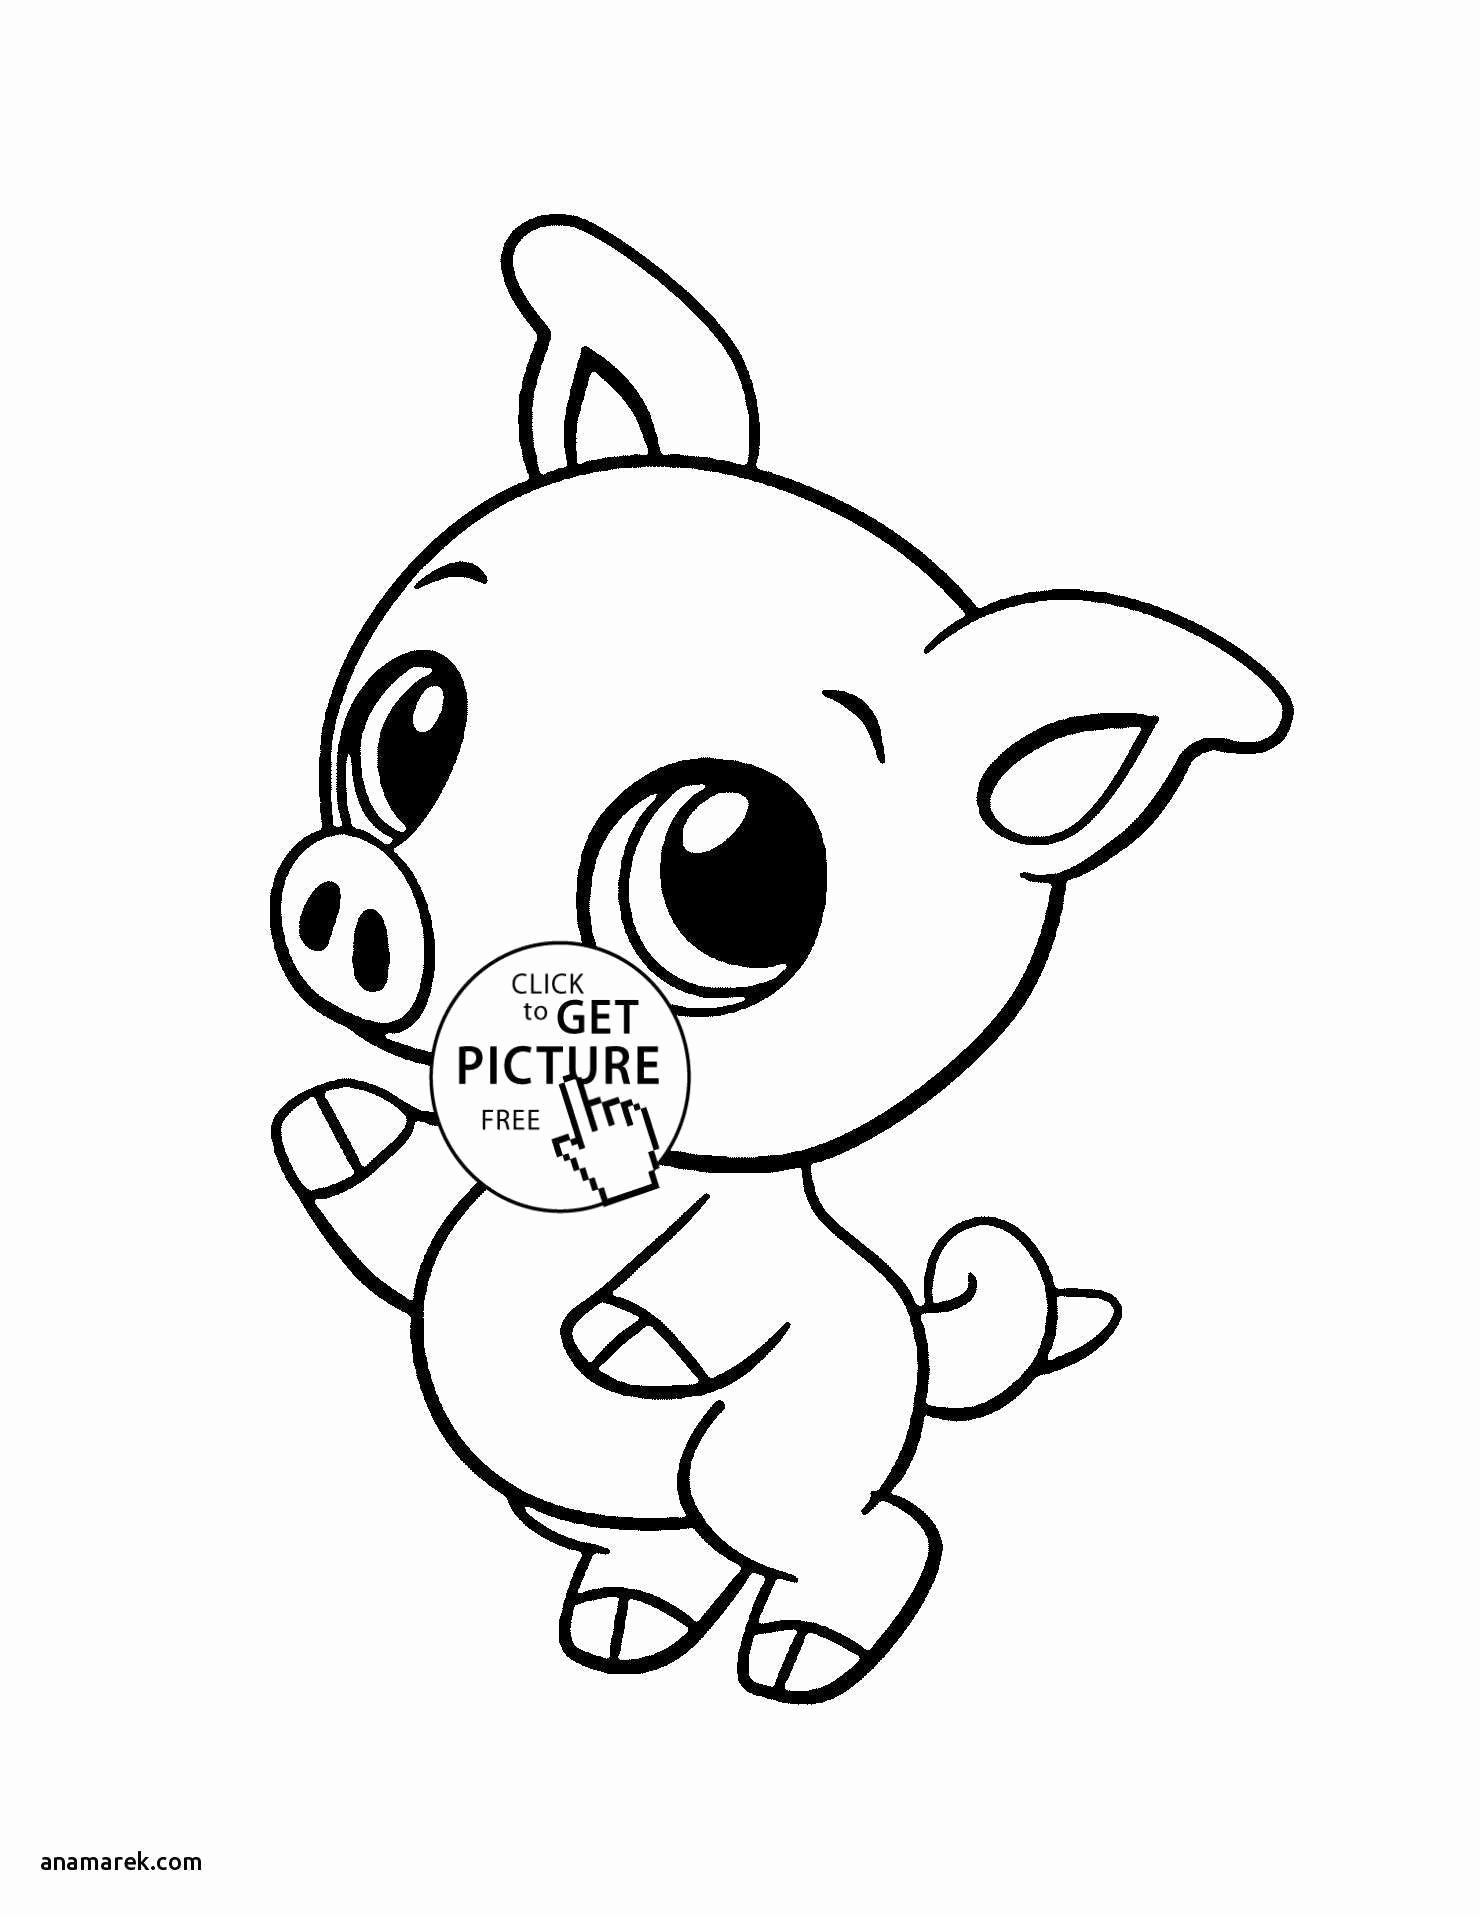 Cute Cartoon Animal Coloring Pages Awesome Coloring Pages Coloring Pages Picture Cute J In 2020 Farm Animal Coloring Pages Unicorn Coloring Pages Animal Coloring Books